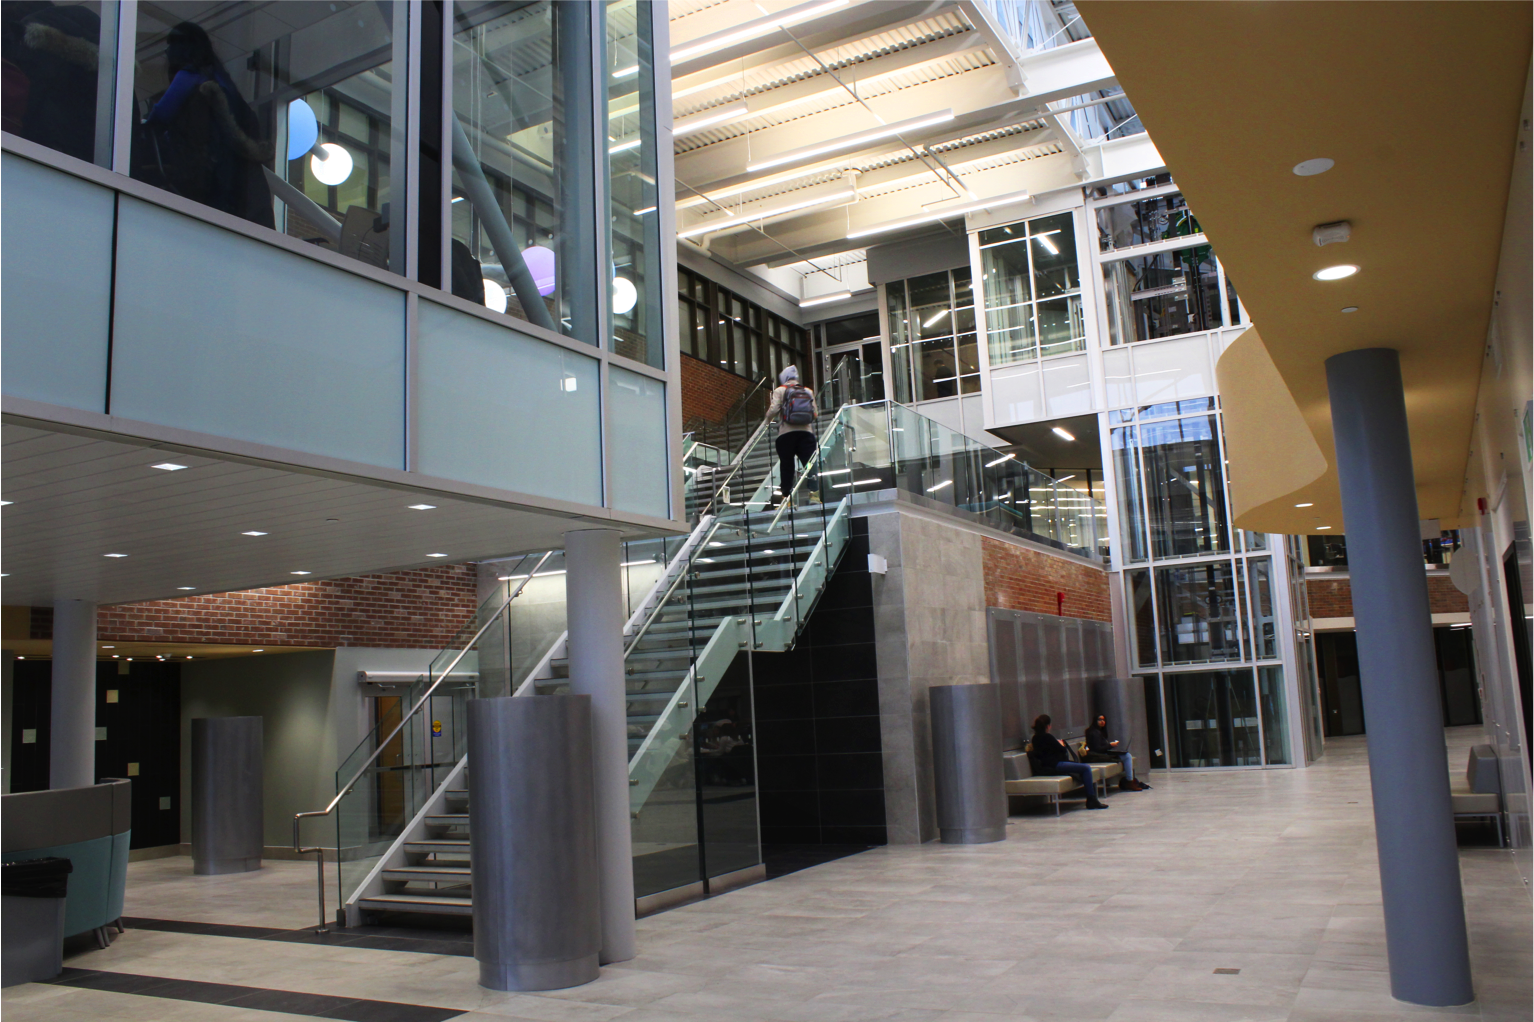 entrance to atrium area with stairs to upper level